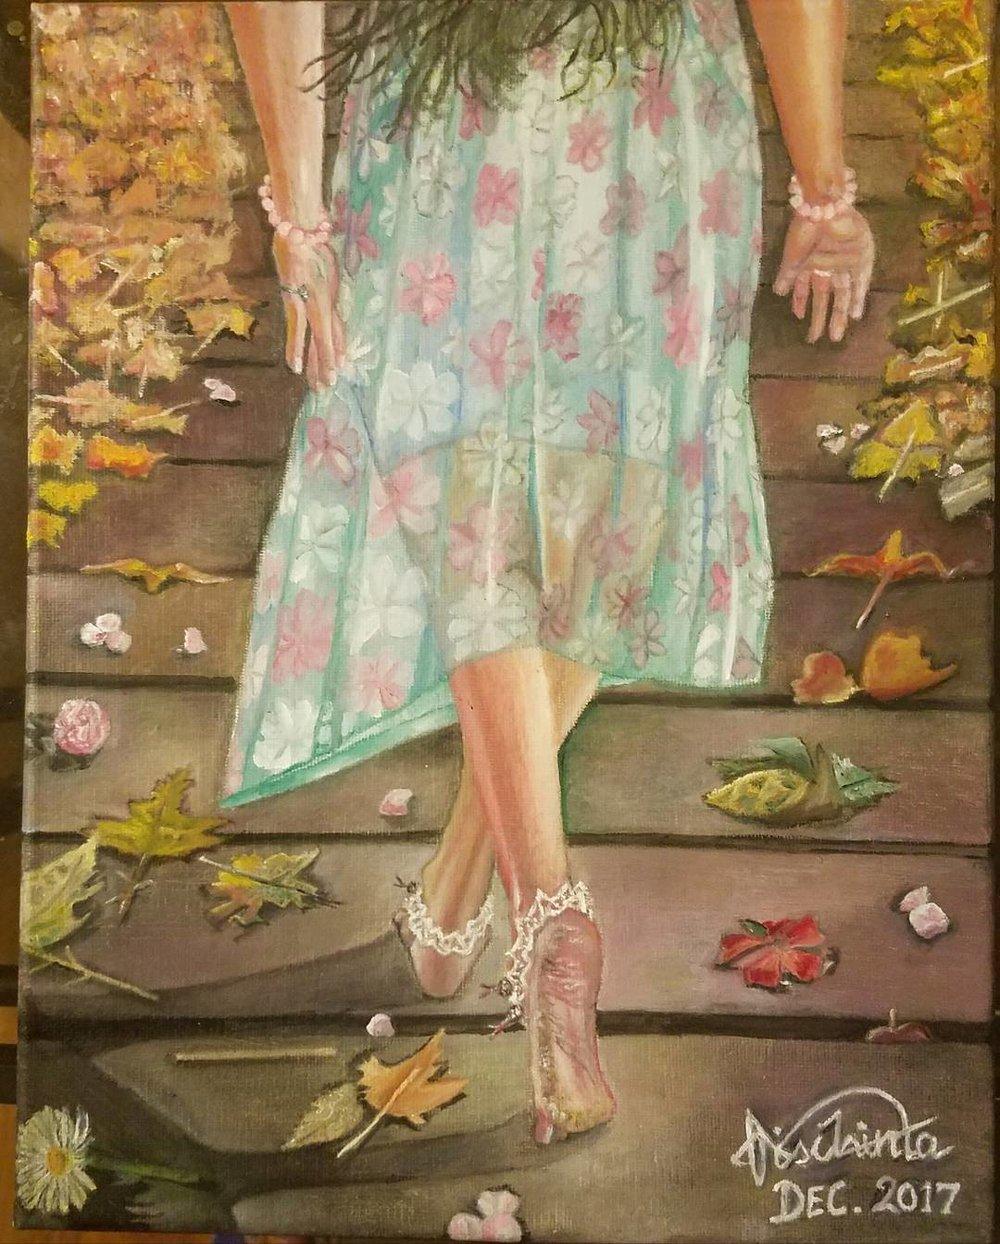 BAREFOOT ACROSS THE BRIDGE - OIL ON CANVAS. DEC. 2017Sometimes, we are challenged to leap off our comfort zones. Sometimes, we need to kick off our shoes and tread barefoot towards an unknown destination, taking it one tiny step at a time across the bridge to our truth, our destiny. So, let's take in the vagaries of this unknown journey and prepare to go barefoot as we rediscover ourselves and embrace who we really are. This process of purging, surrender, renewed insight and achieving wholeness within may sometimes be catalyzed by a twin flame dimension of consciousness and is not necessarily tied to externalities.